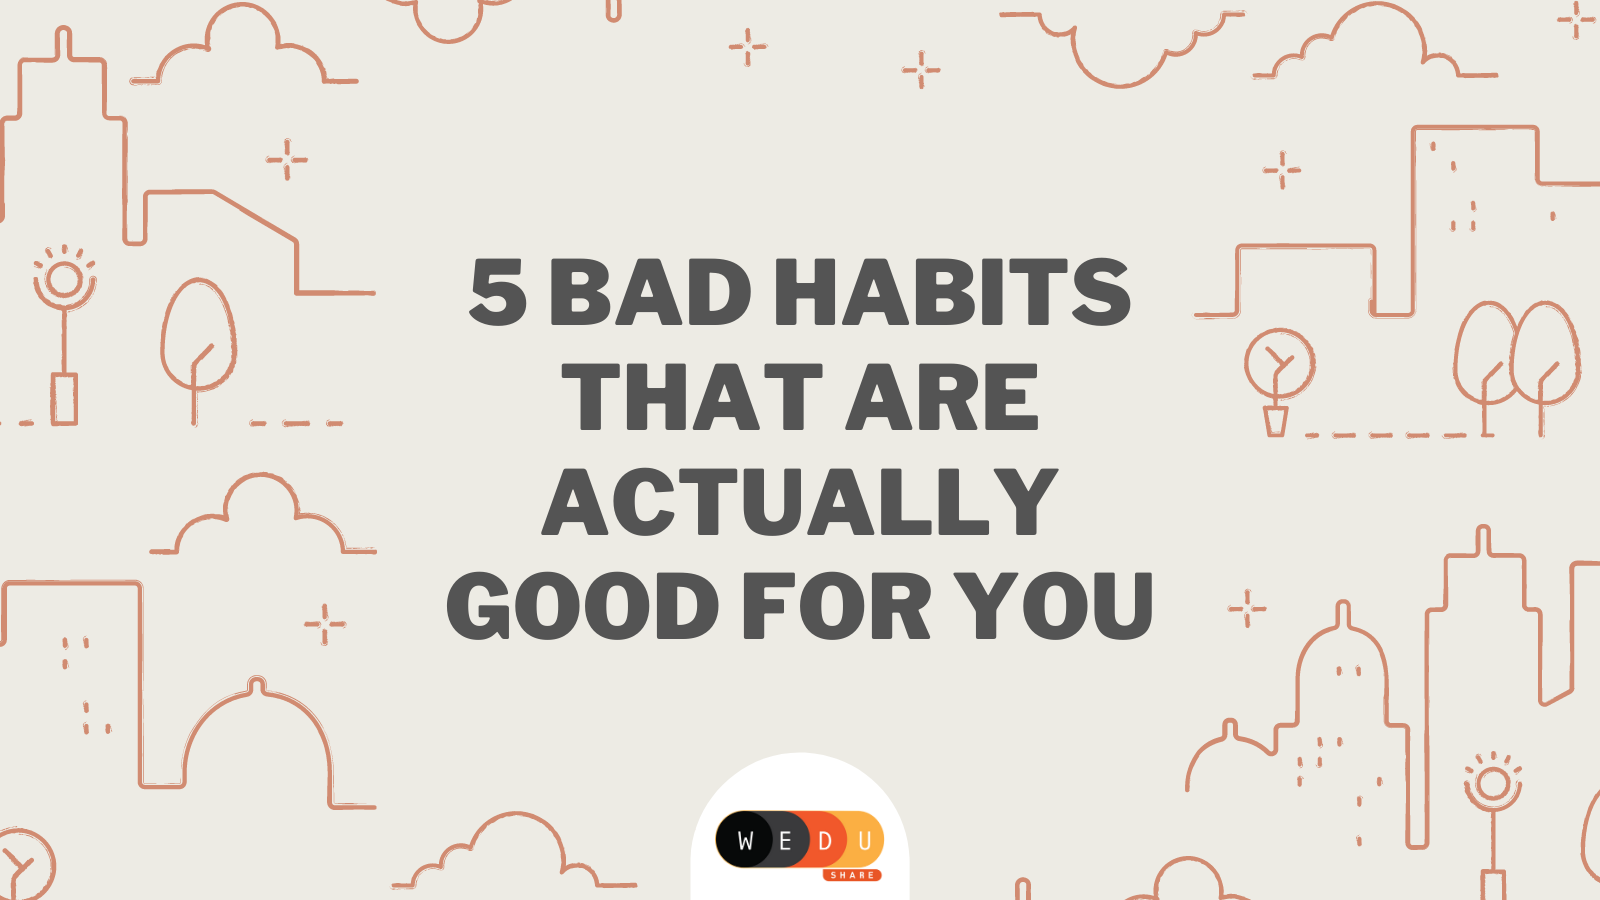 5 Bad Habits That Are Actually Good For You